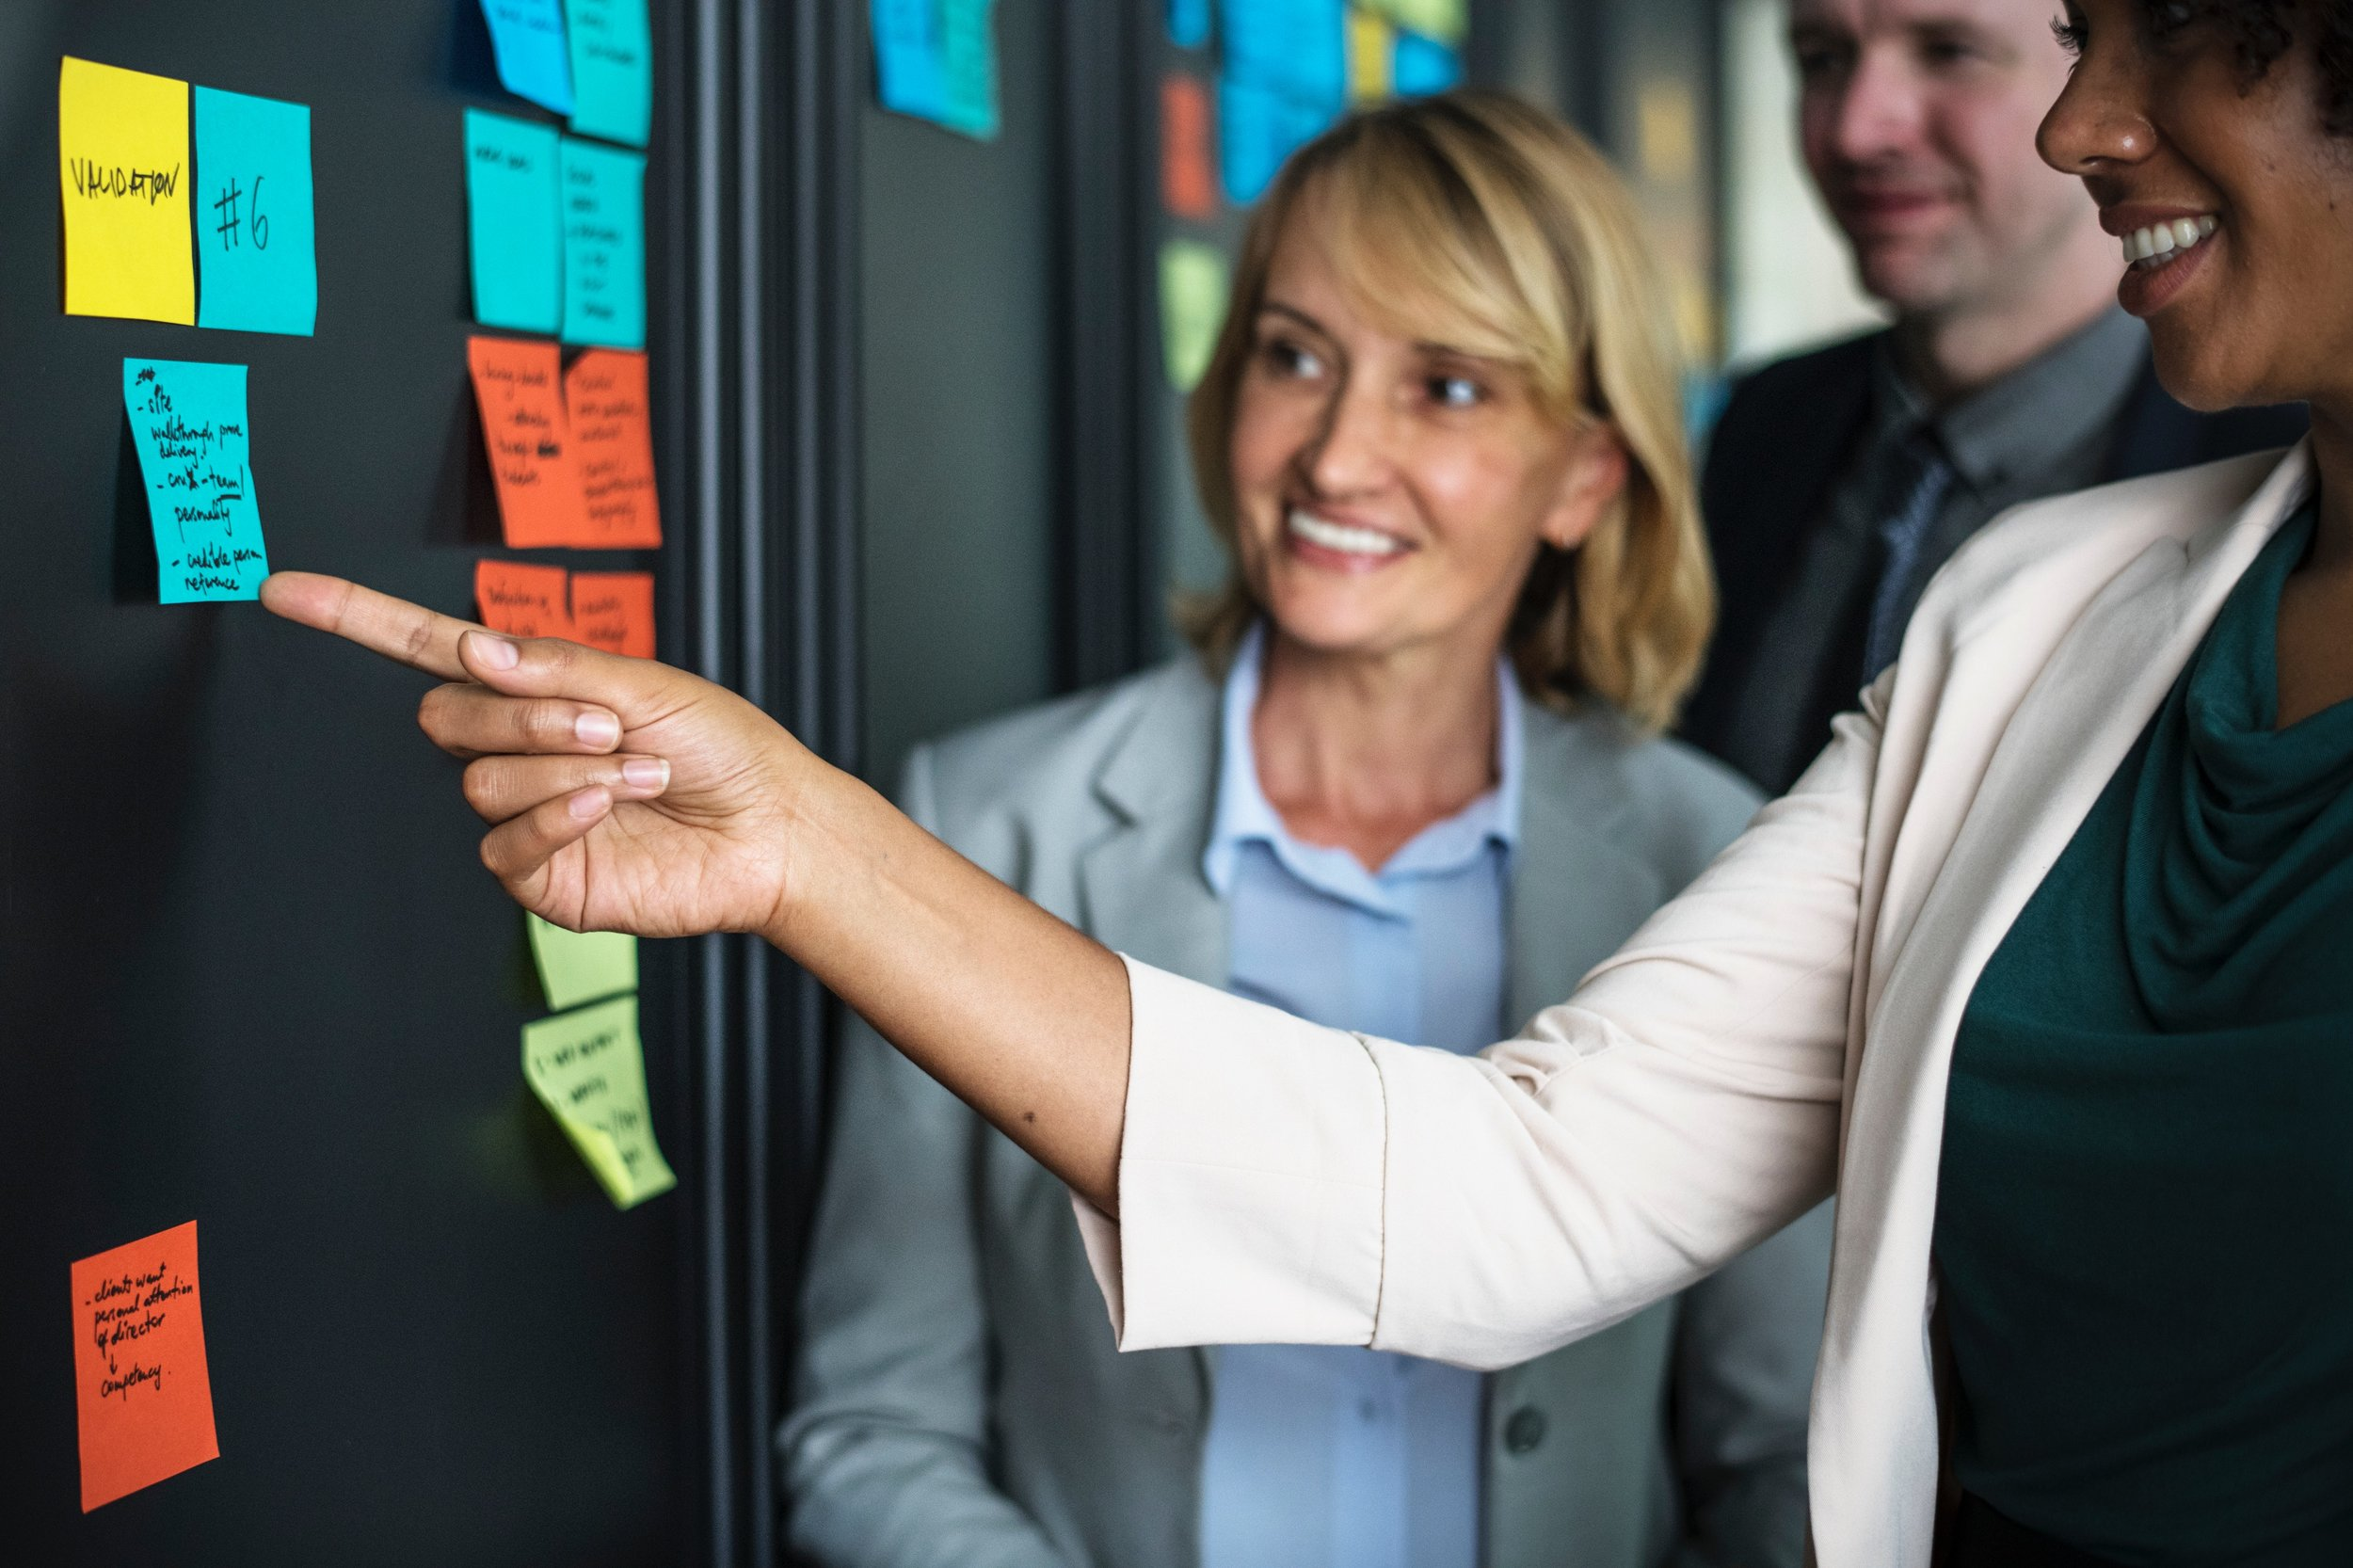 Agile is more than post-it notes and a board!